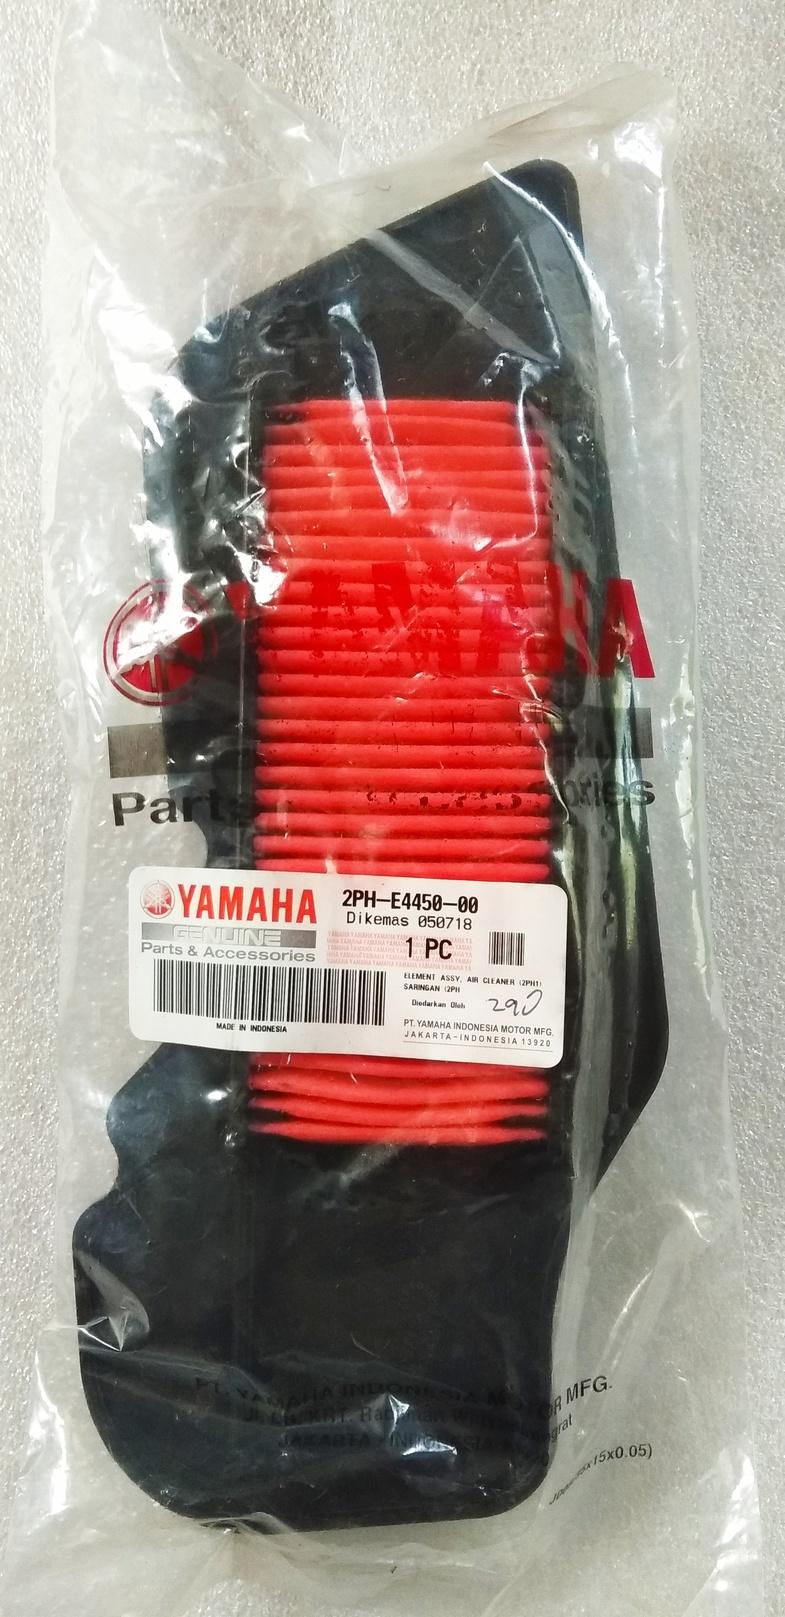 Motorcycle Air Filter For Sale Filters Online Brands 4 Wheeler Fuel Original Yamahal Mio I M3 125